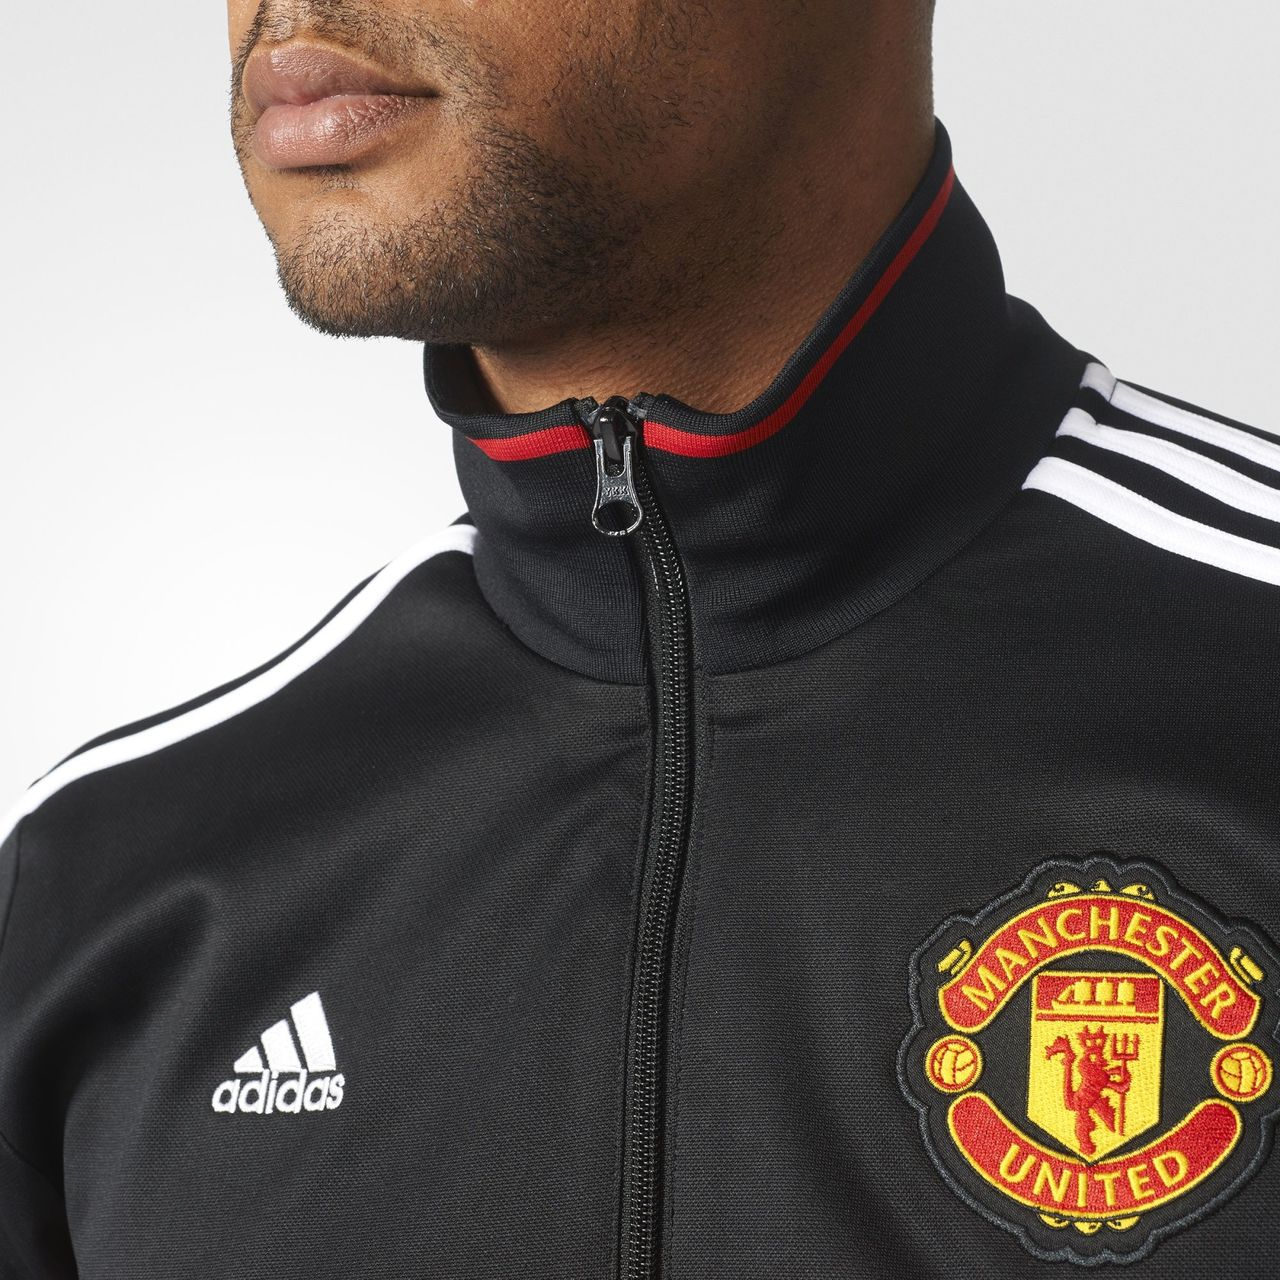 3f80f11da1dae ... Click to enlarge image  adidas manchester united 3 stripes track jacket black real red white g.jpg  ...